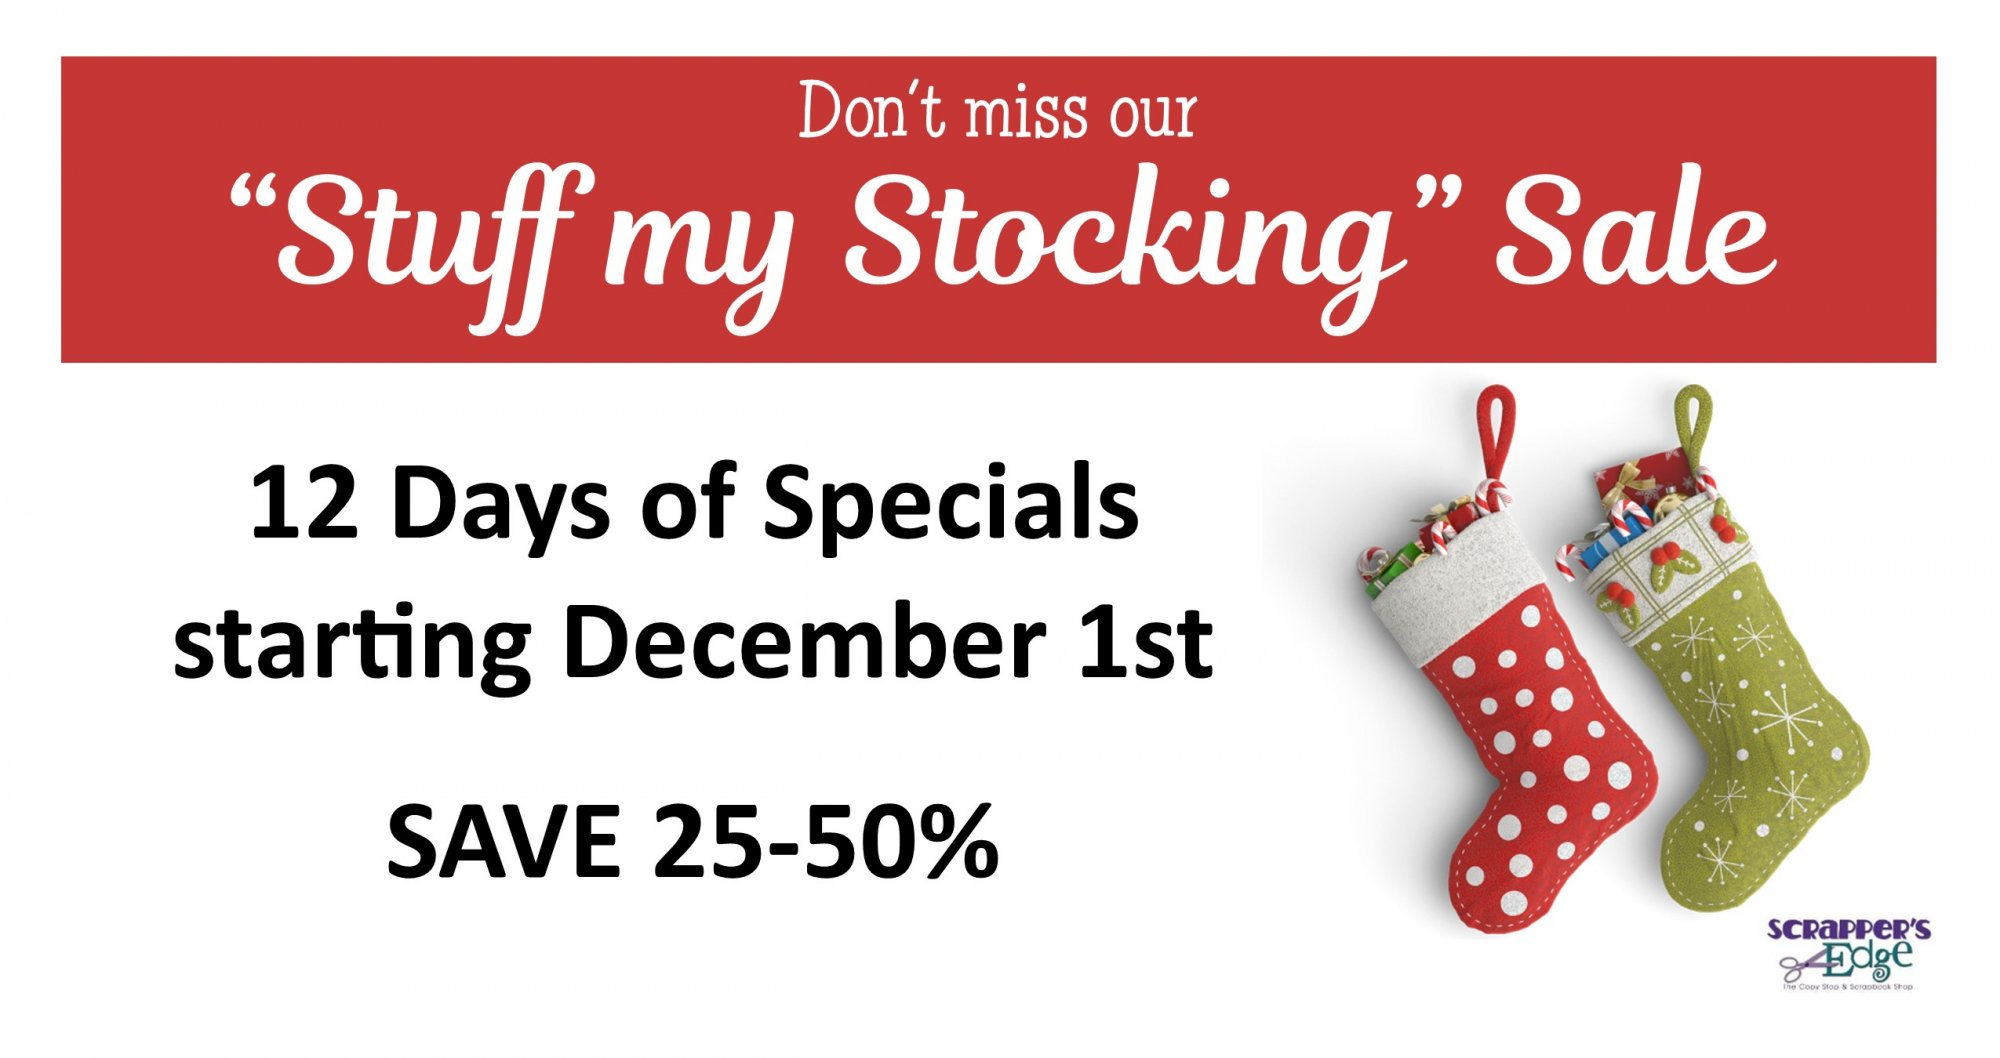 Stuff my Stocking SALE